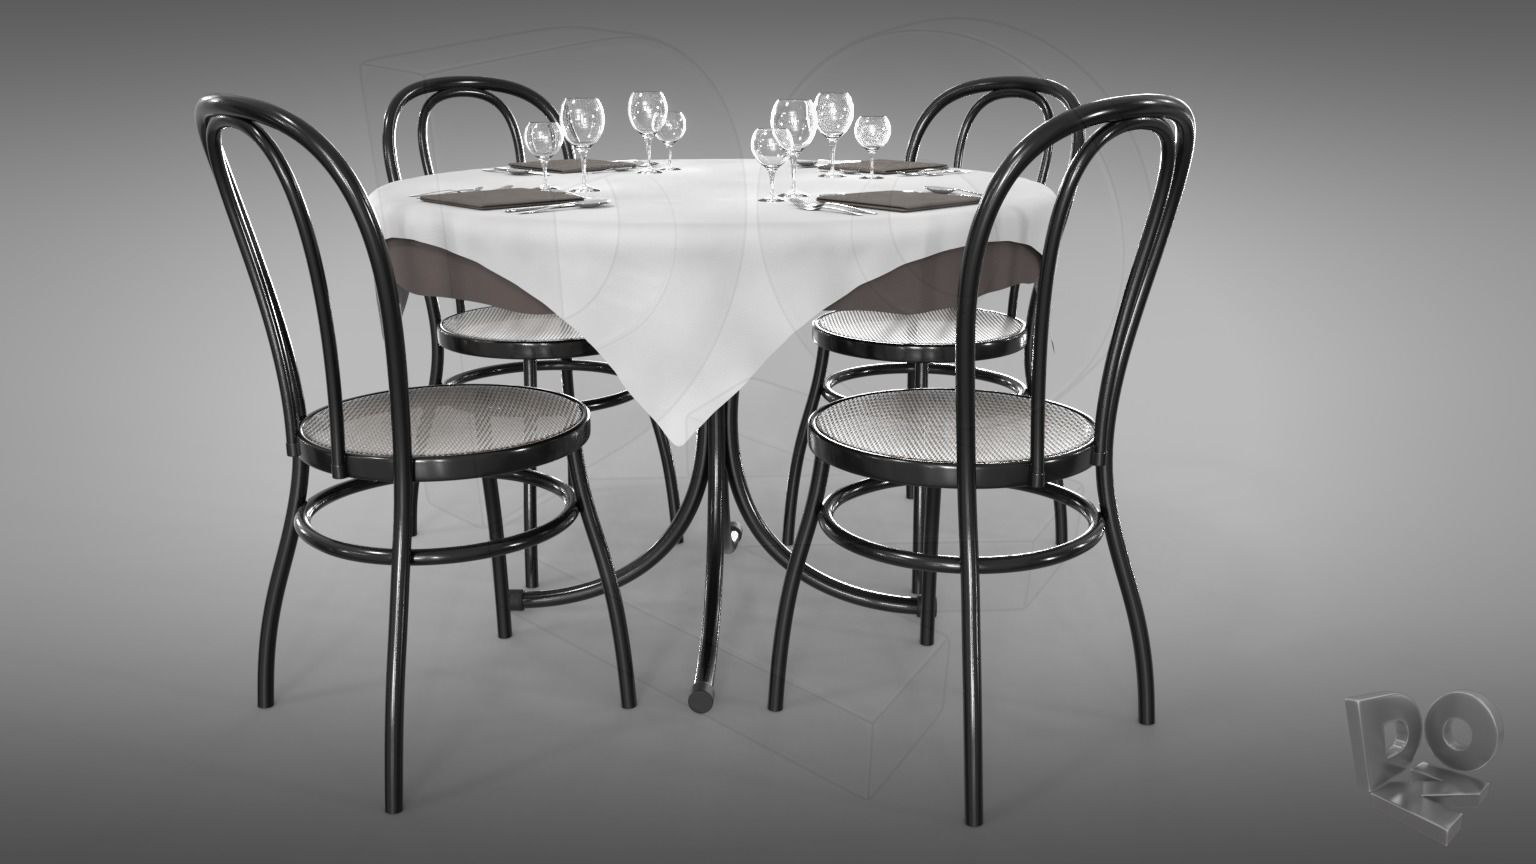 Restaurant table plus cutlery and chairs